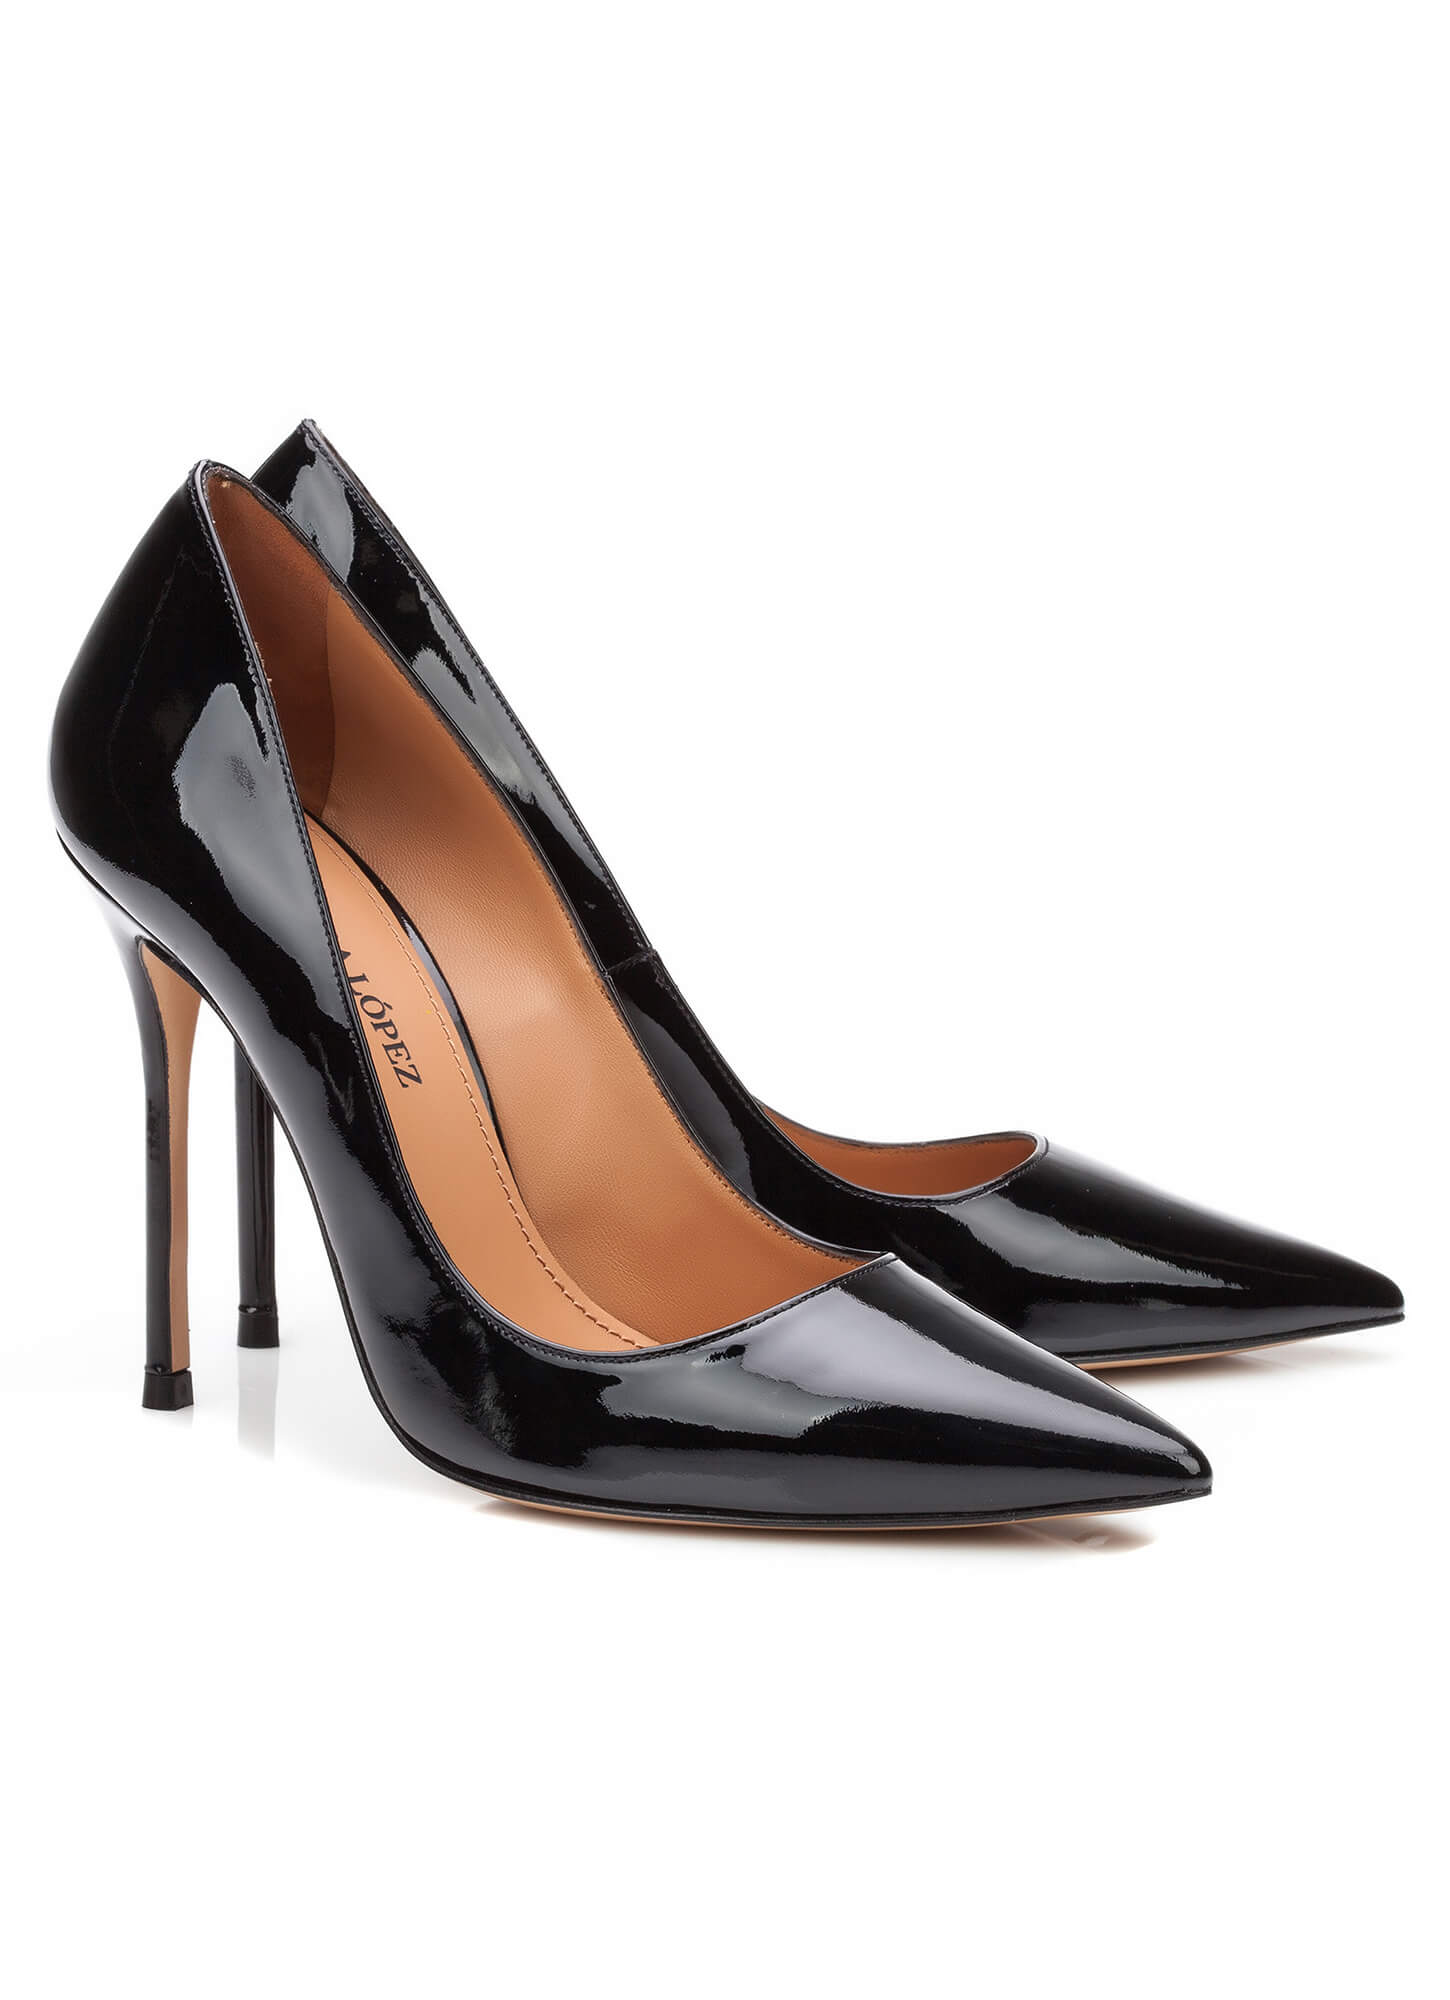 Free shipping and returns on Women's Black Pump Heels at hereaupy06.gq